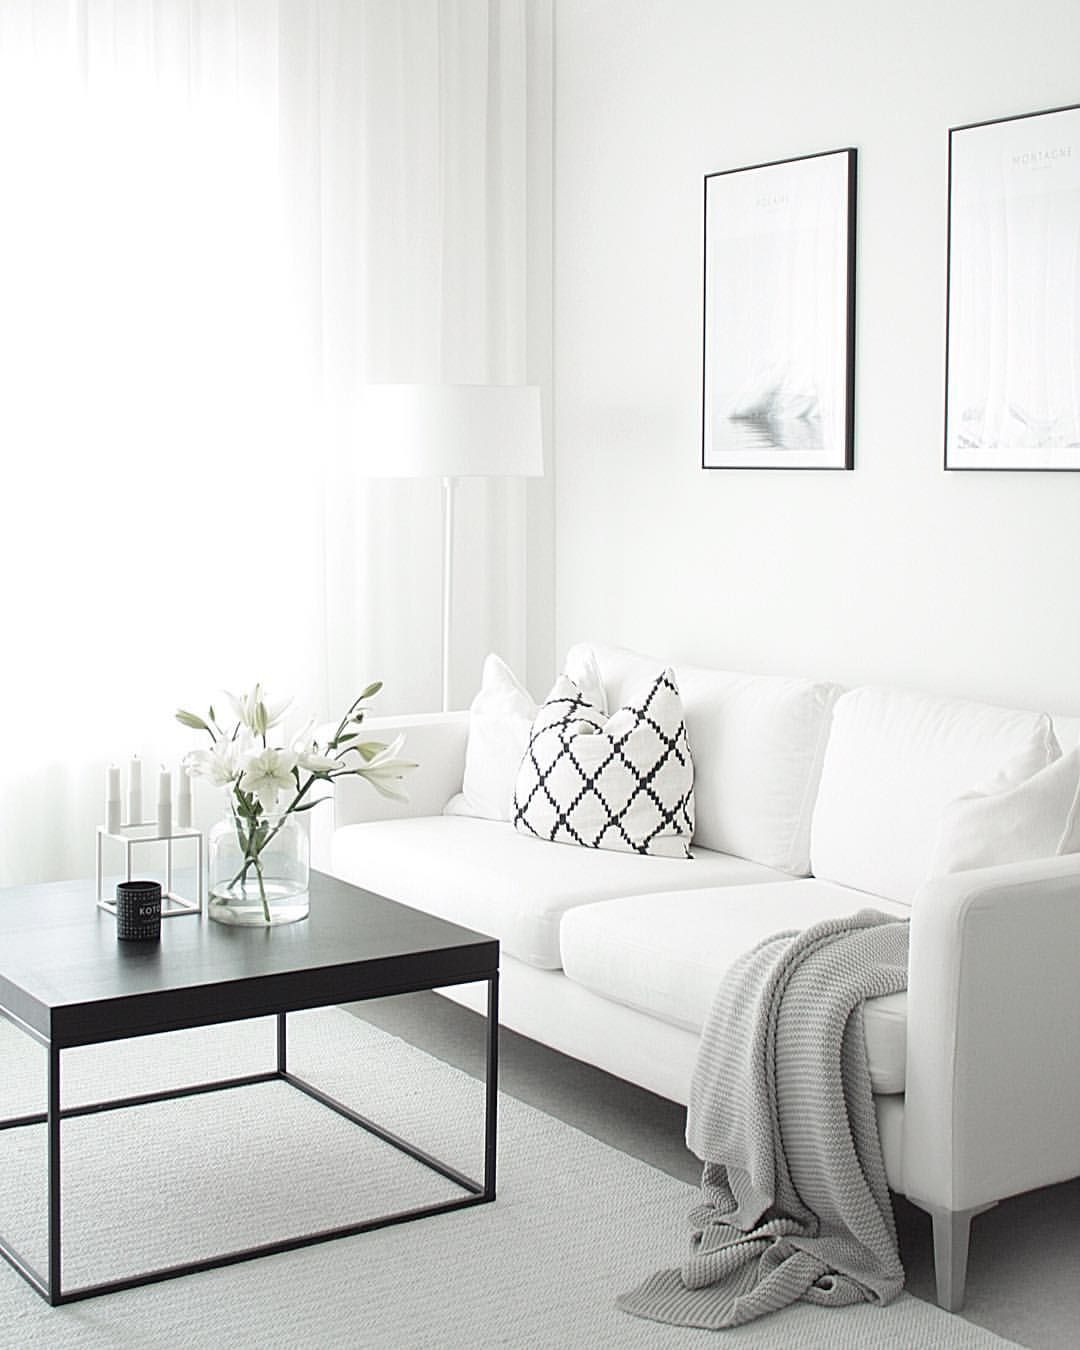 Minimal Living Room Inspiration: Creating More Spacious And Alive Living Room By Minimalist